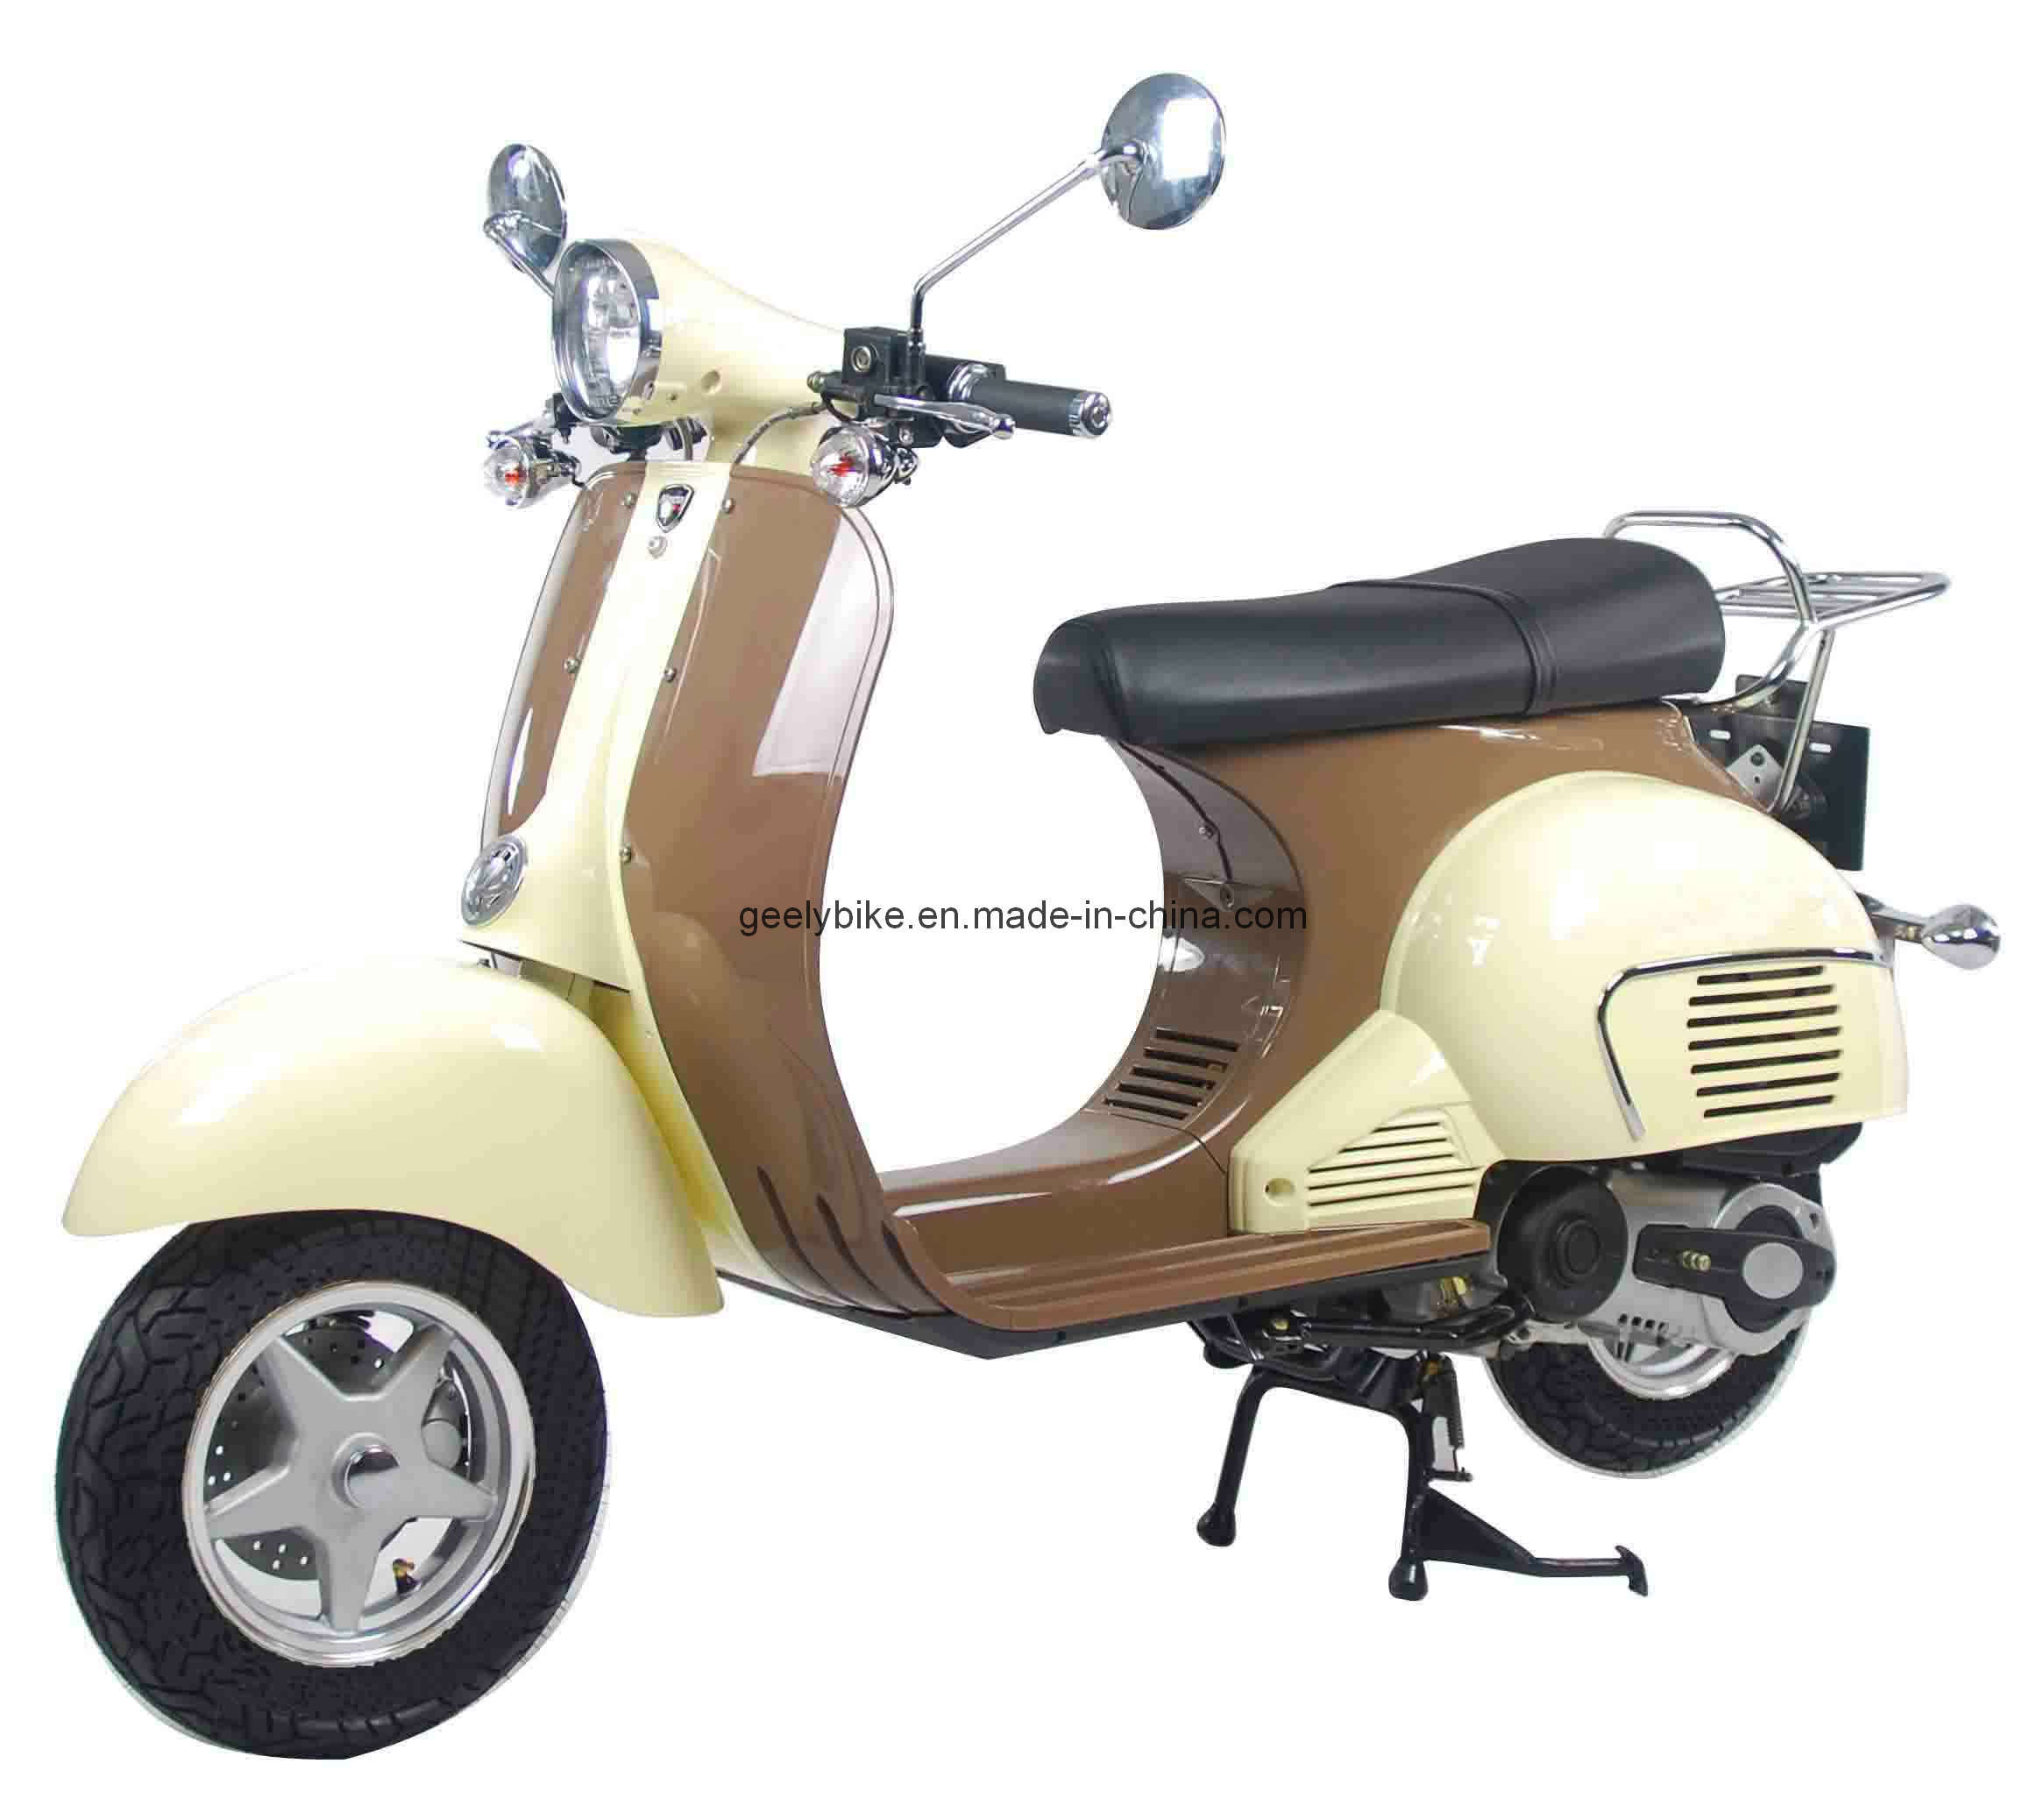 50cc vespa scooter vintage dot aprovado pela epa 50cc vespa scooter vintage dot aprovado pela. Black Bedroom Furniture Sets. Home Design Ideas